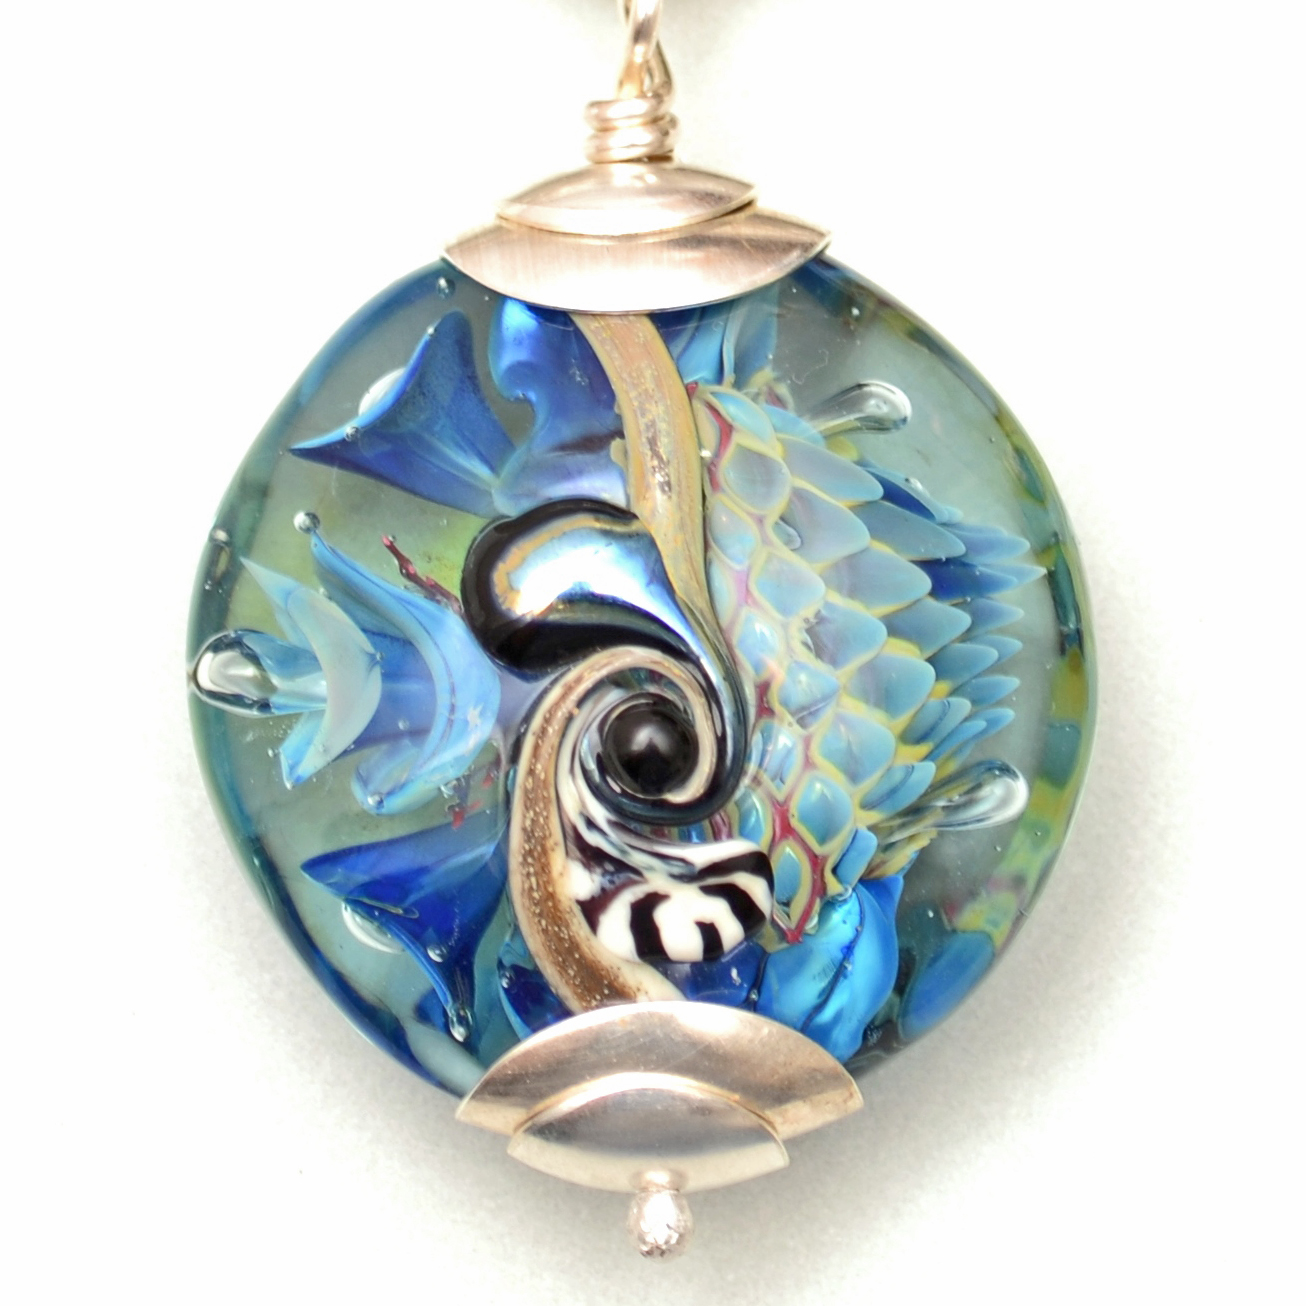 Seabed Series pendant